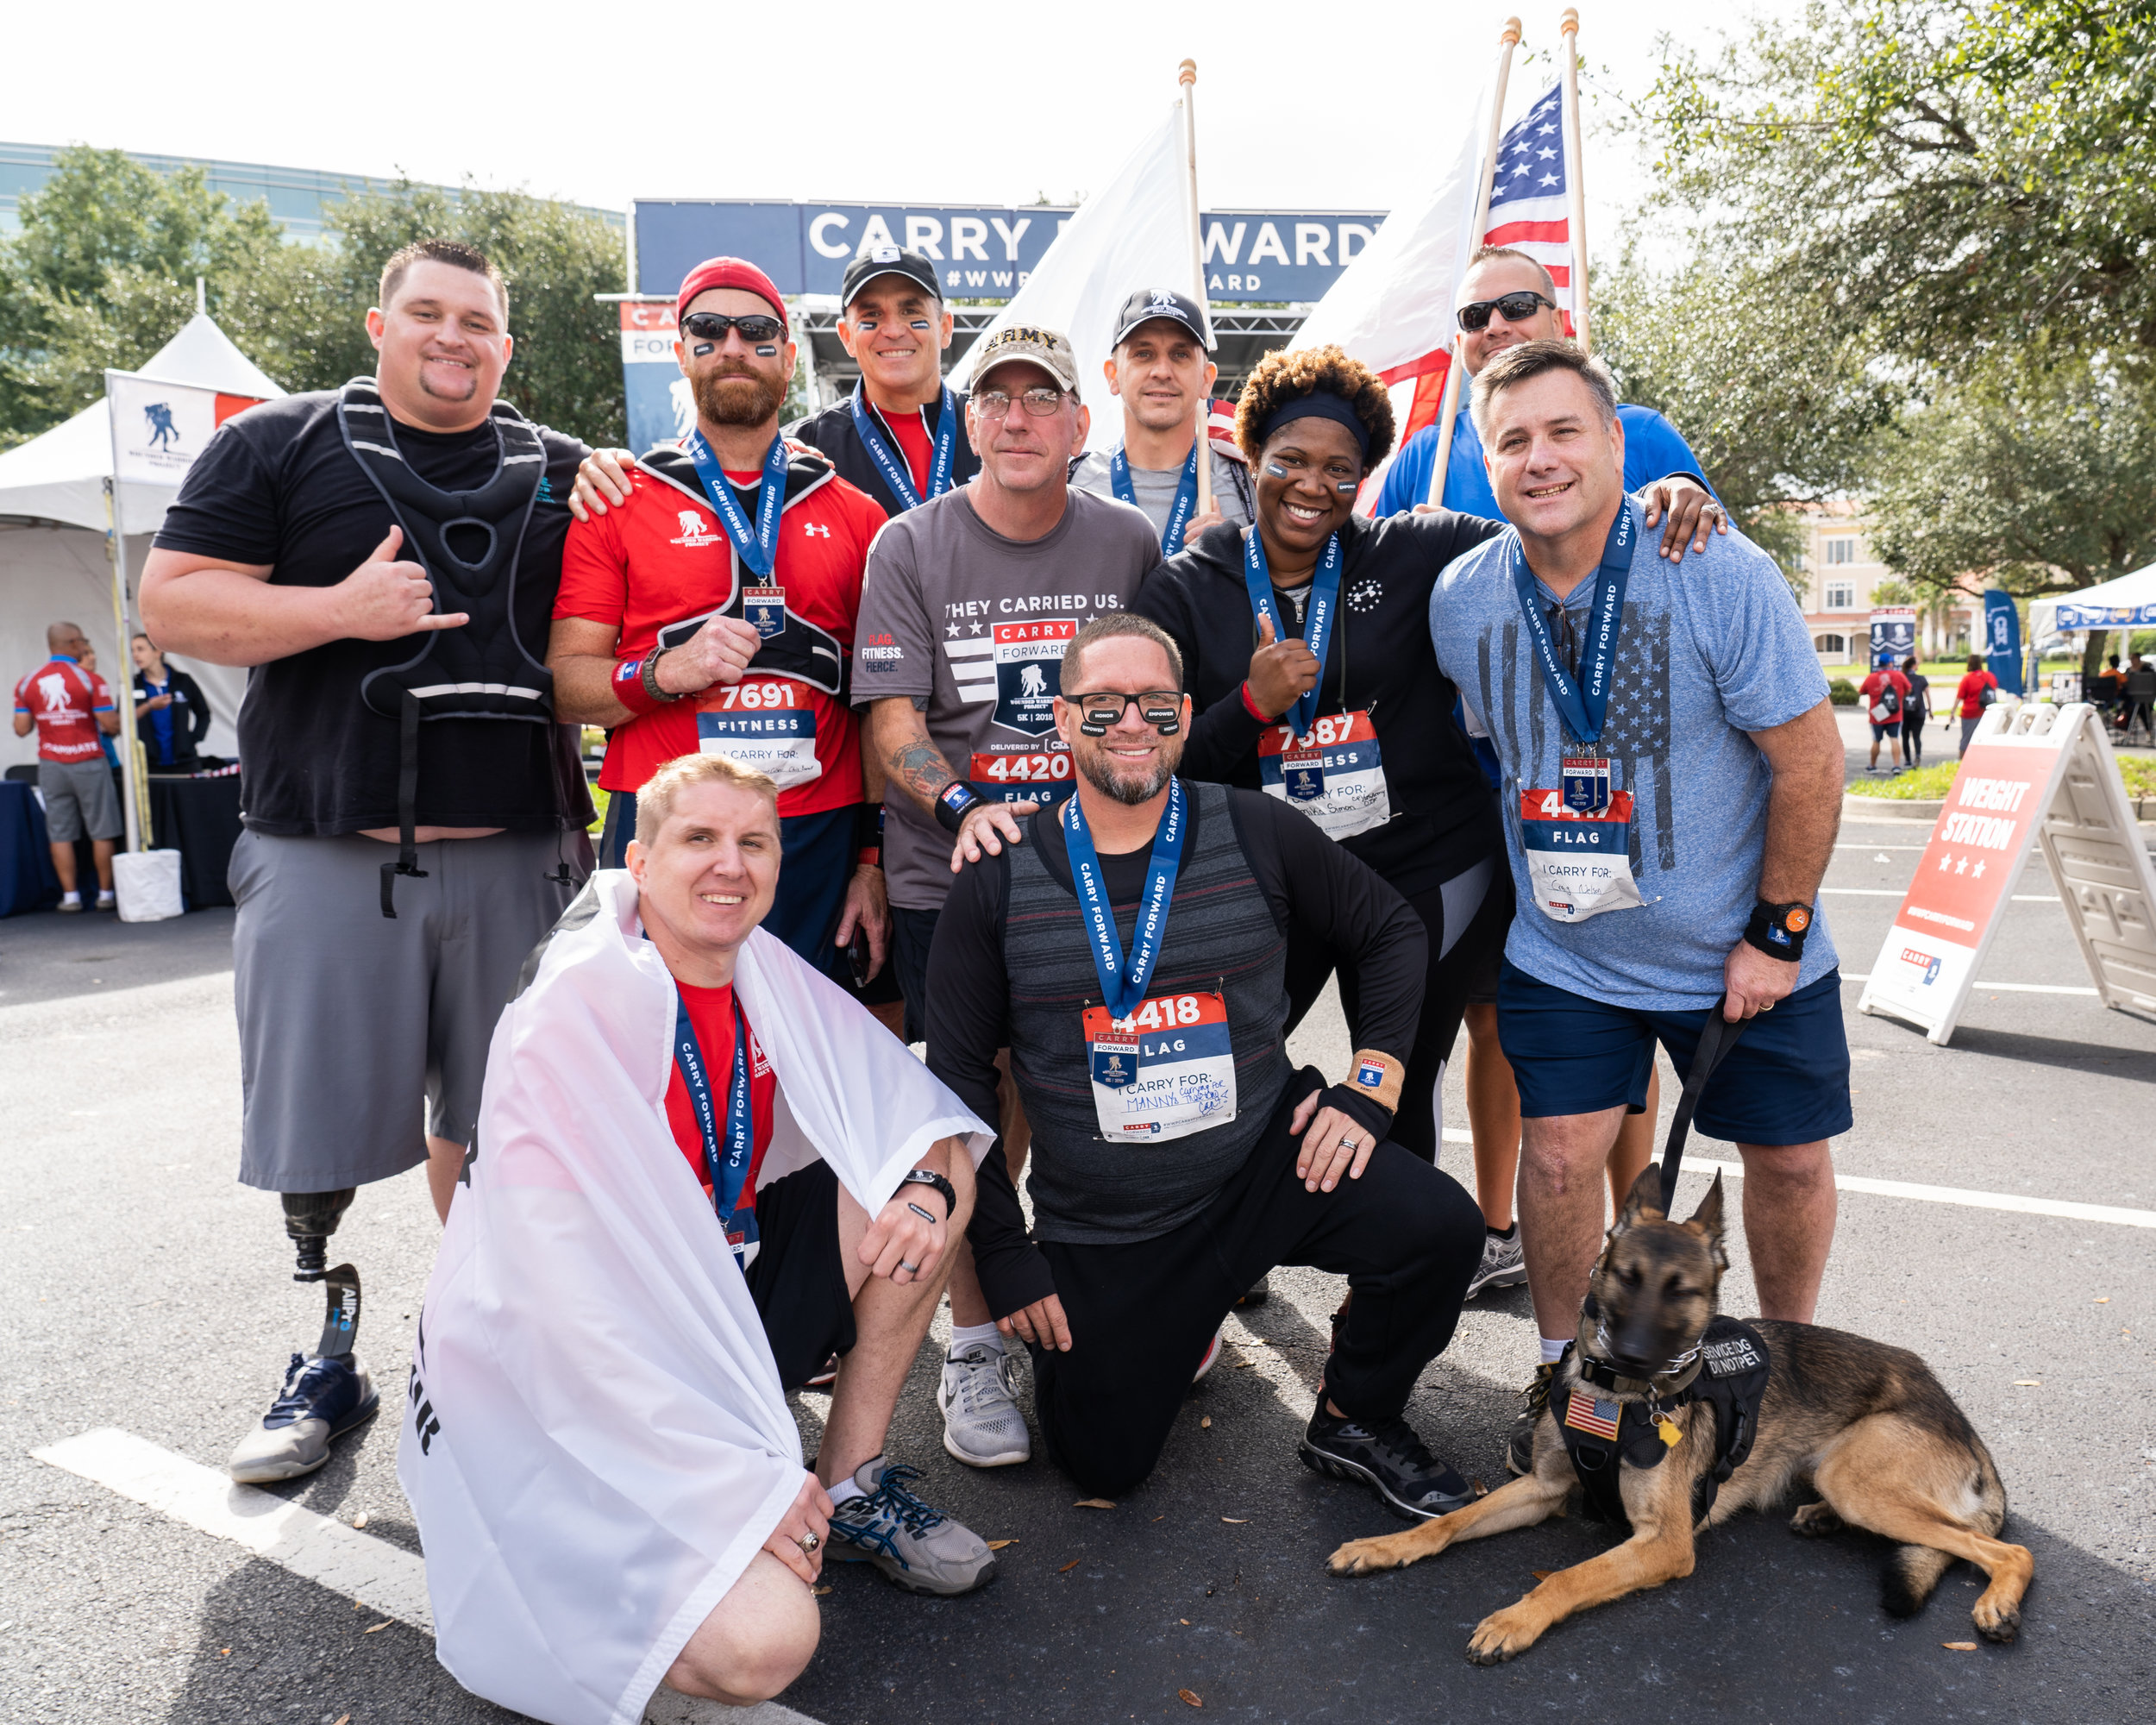 WOUNDED WARRIOR 11-10-18-04313-2.jpg